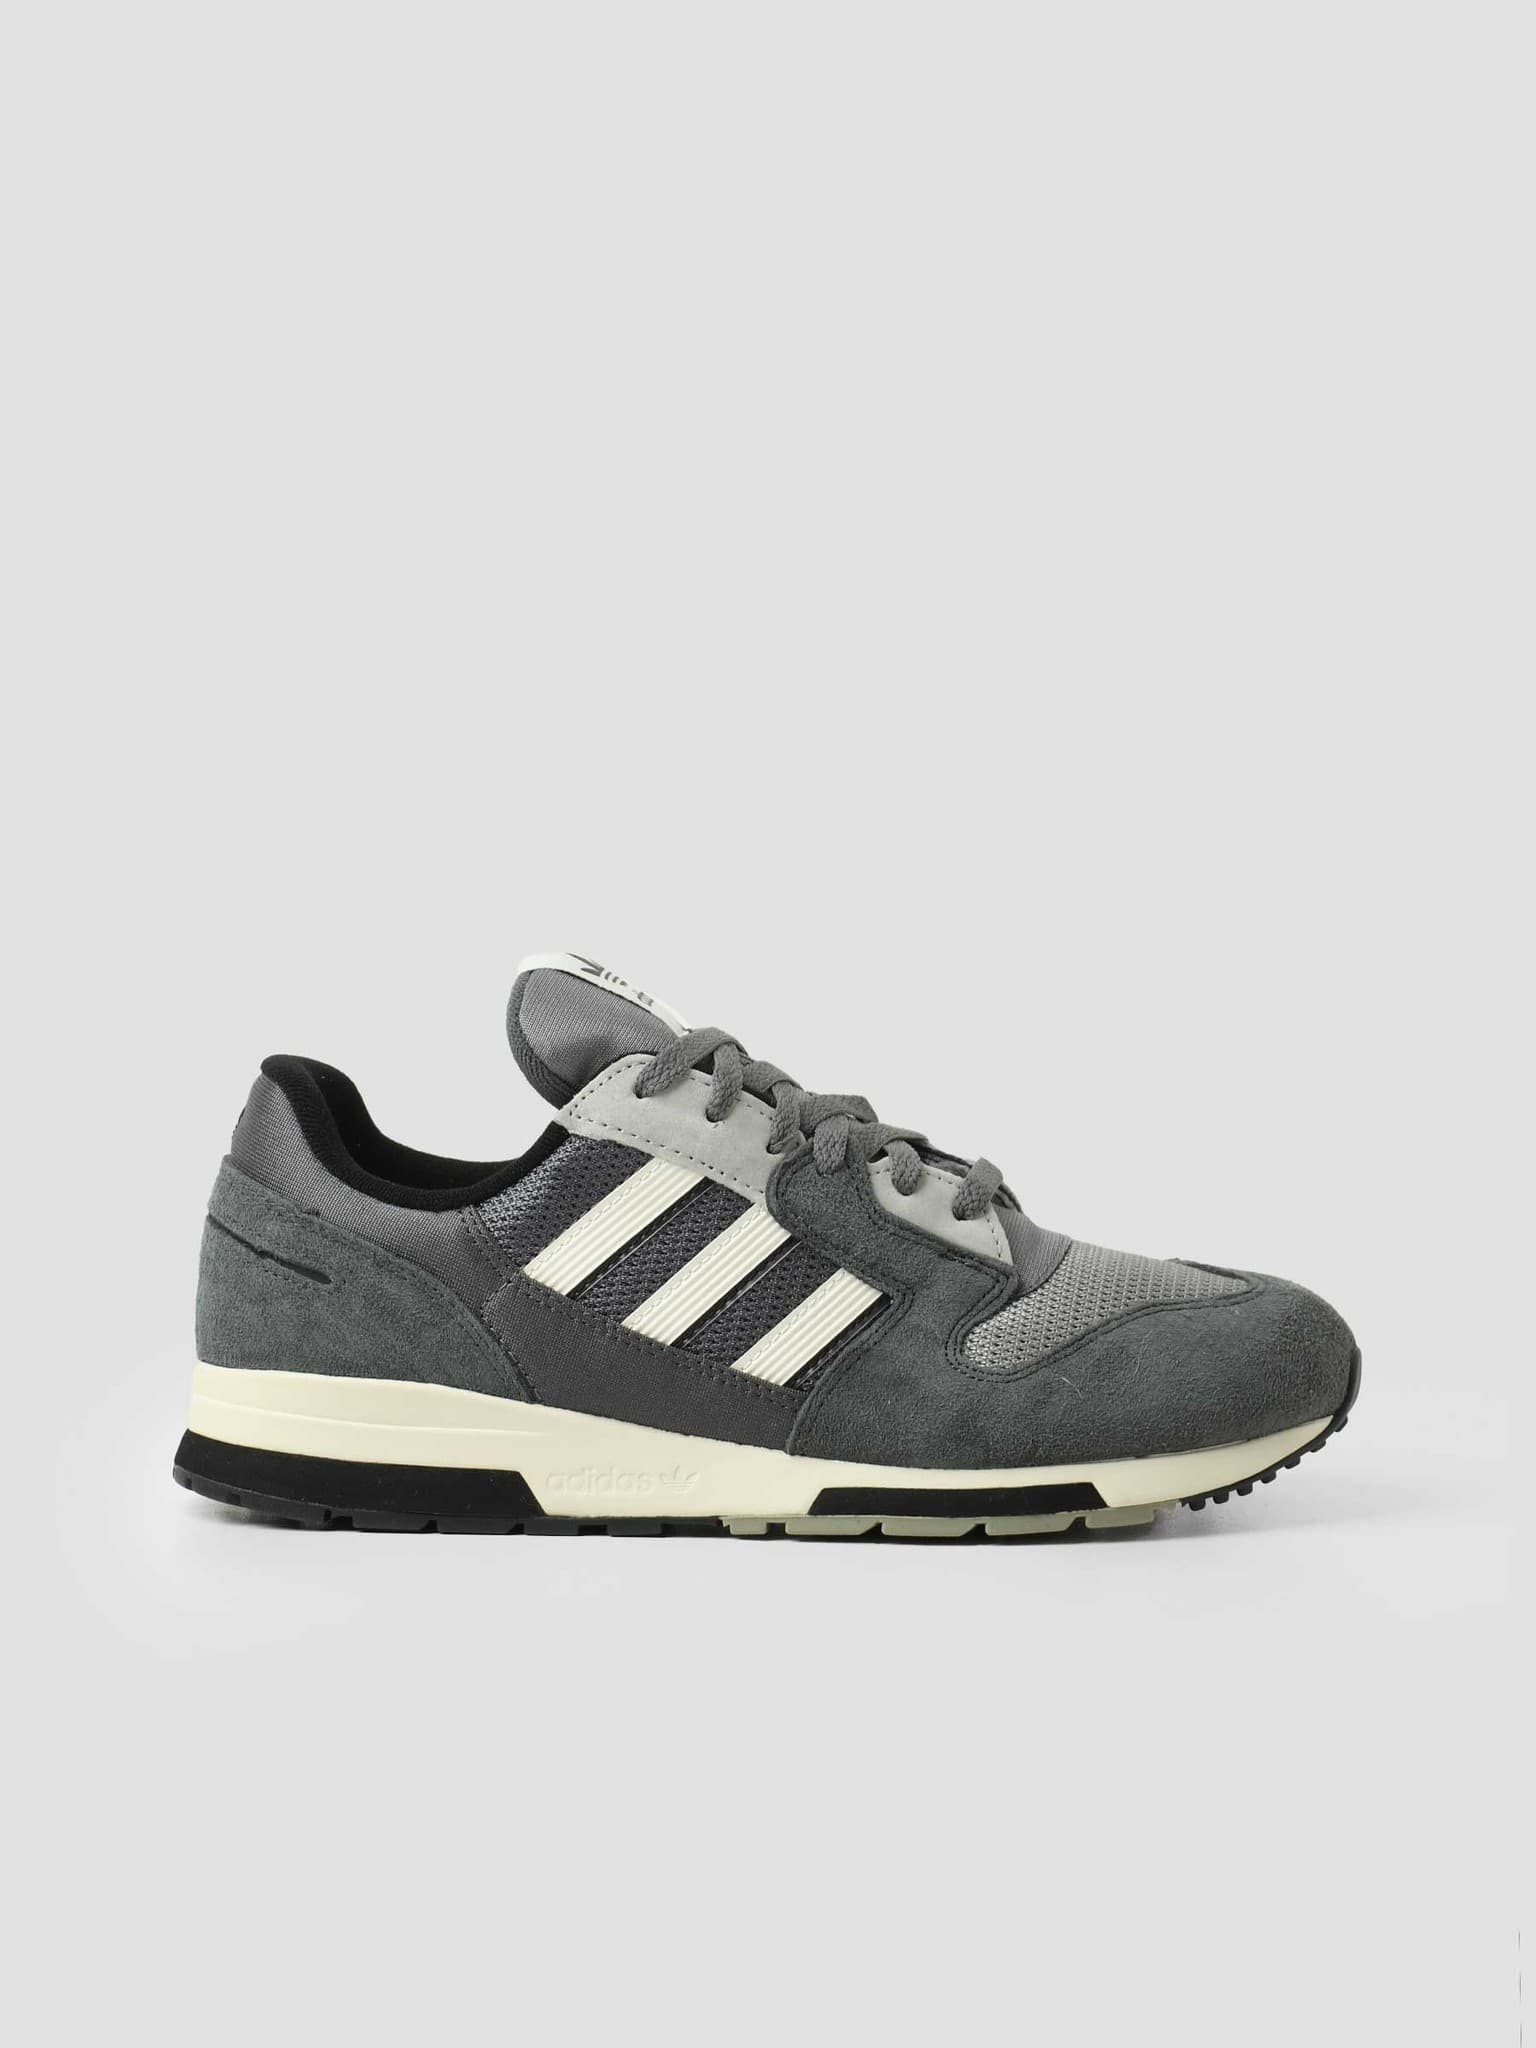 Zx 420 Gresix Off White Feagry FY3661